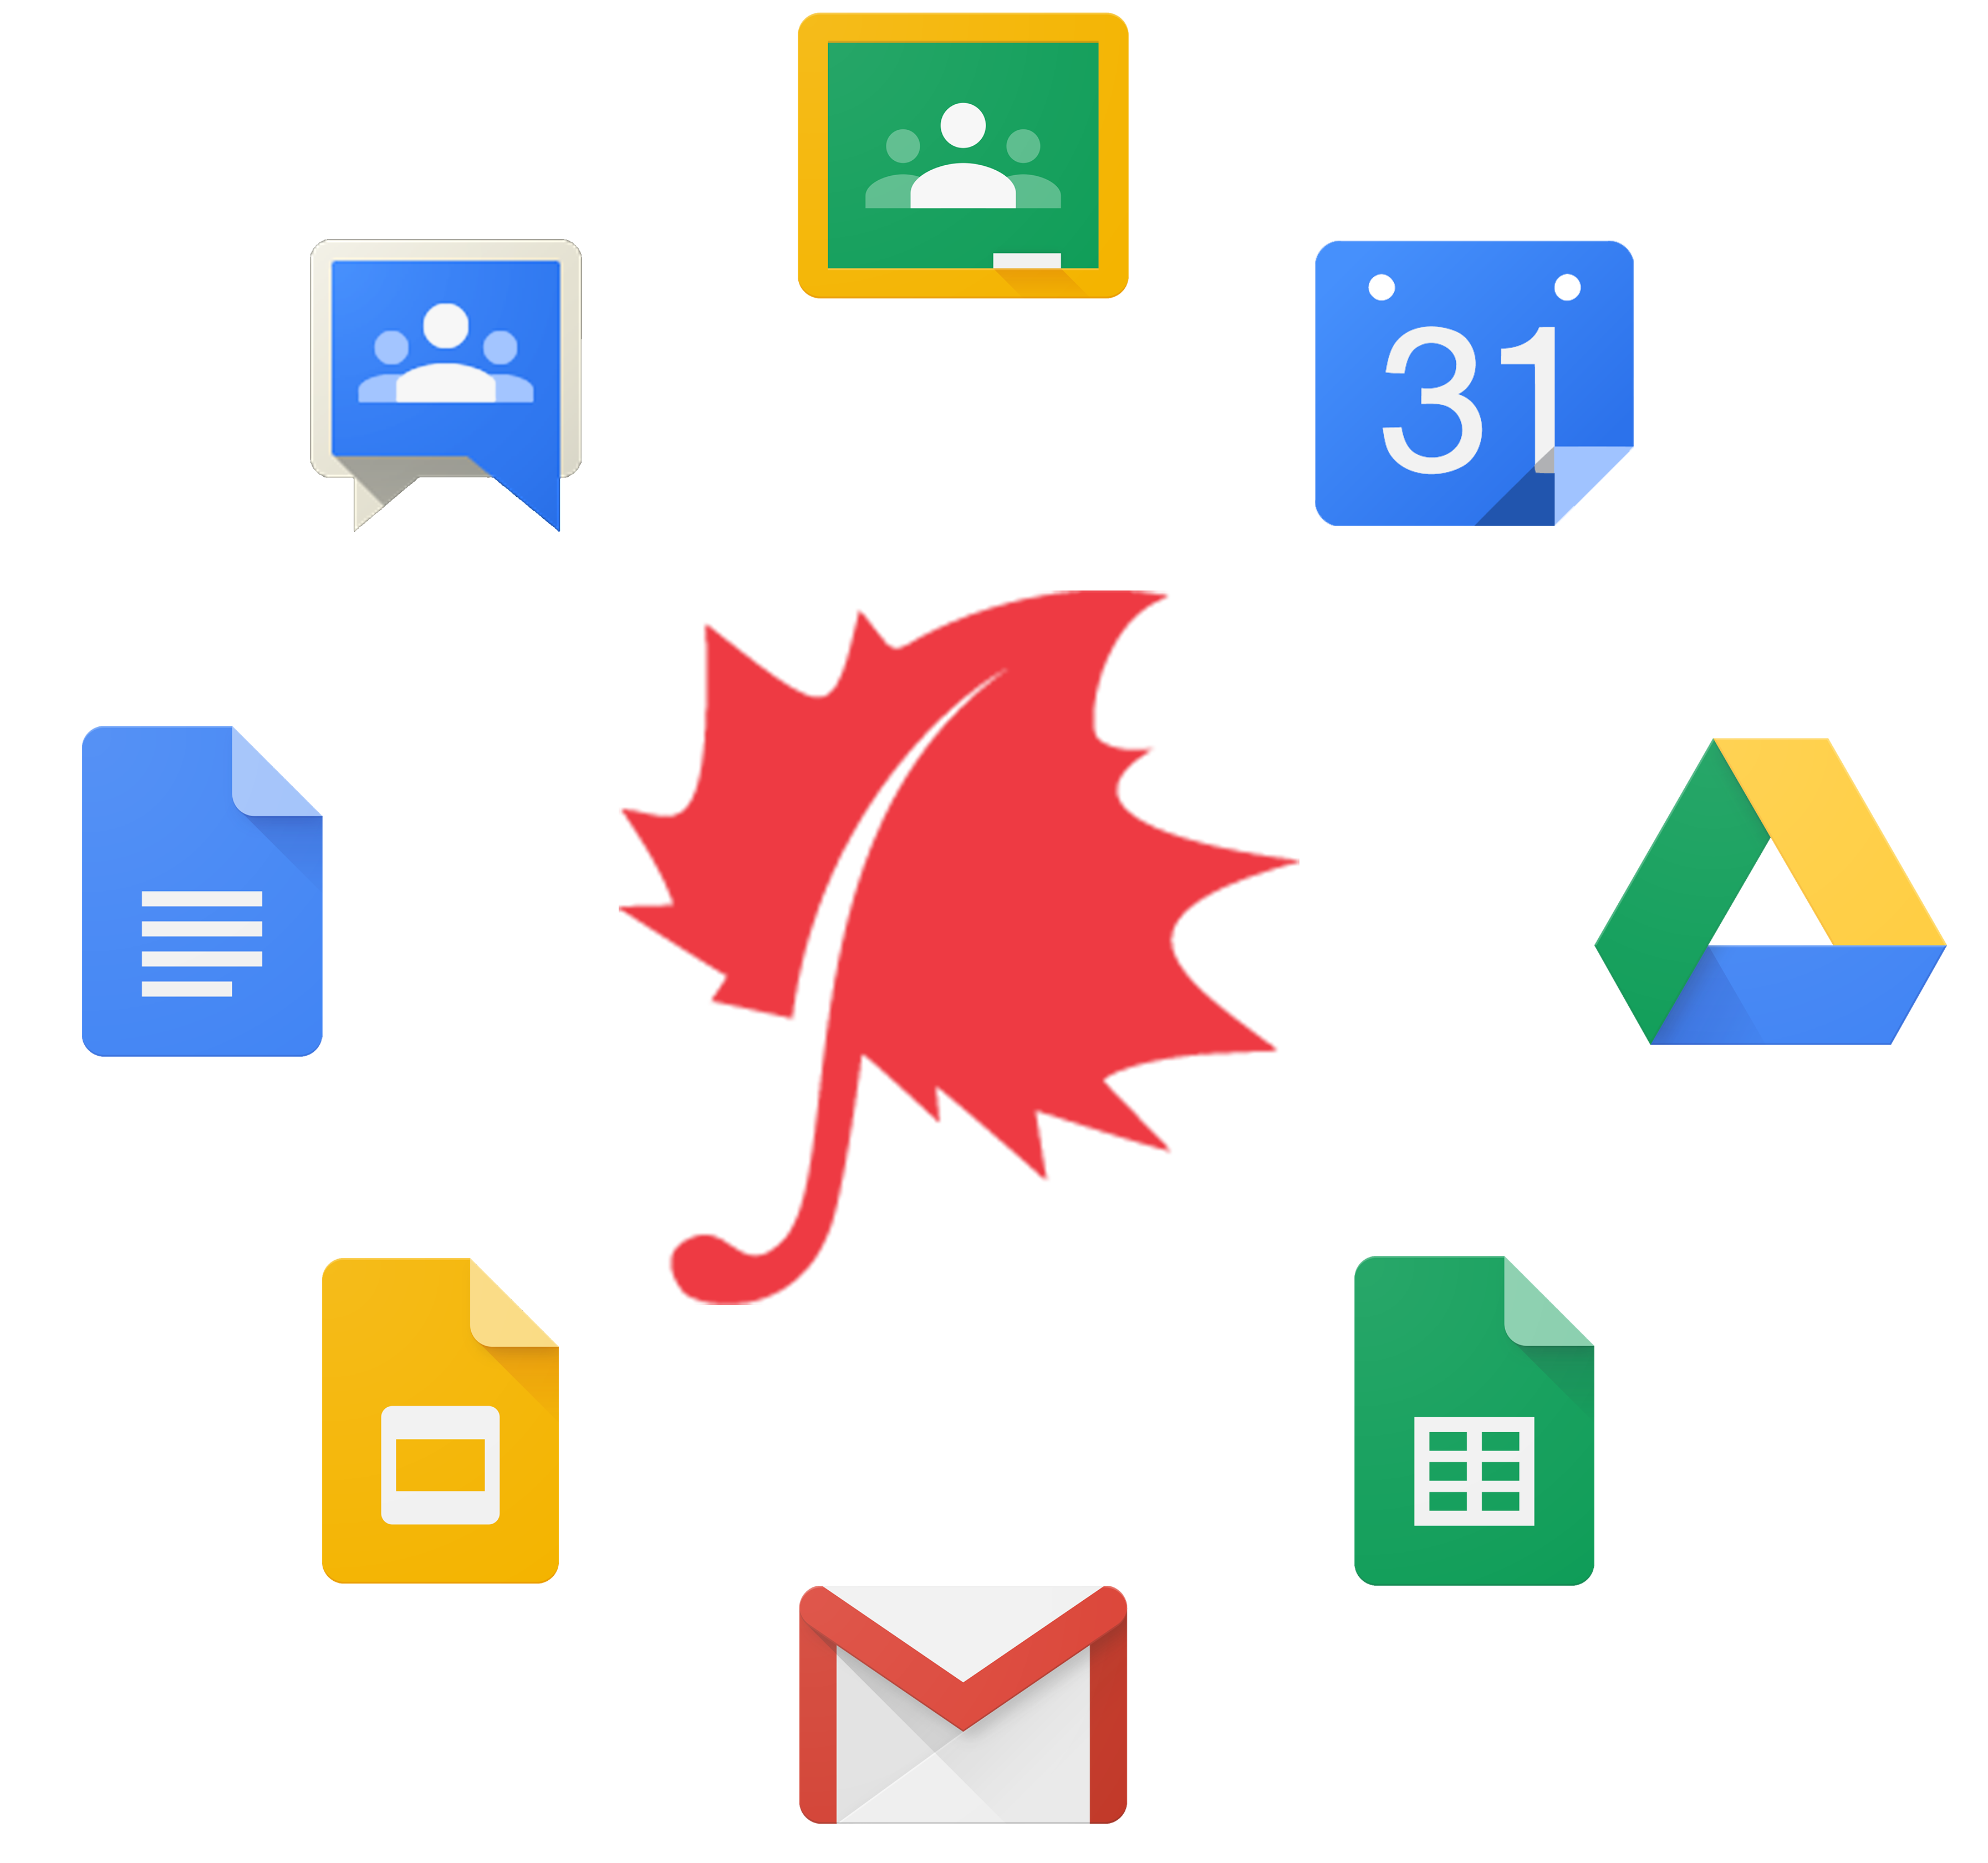 Google classroom png. Coursework integration sycamore education